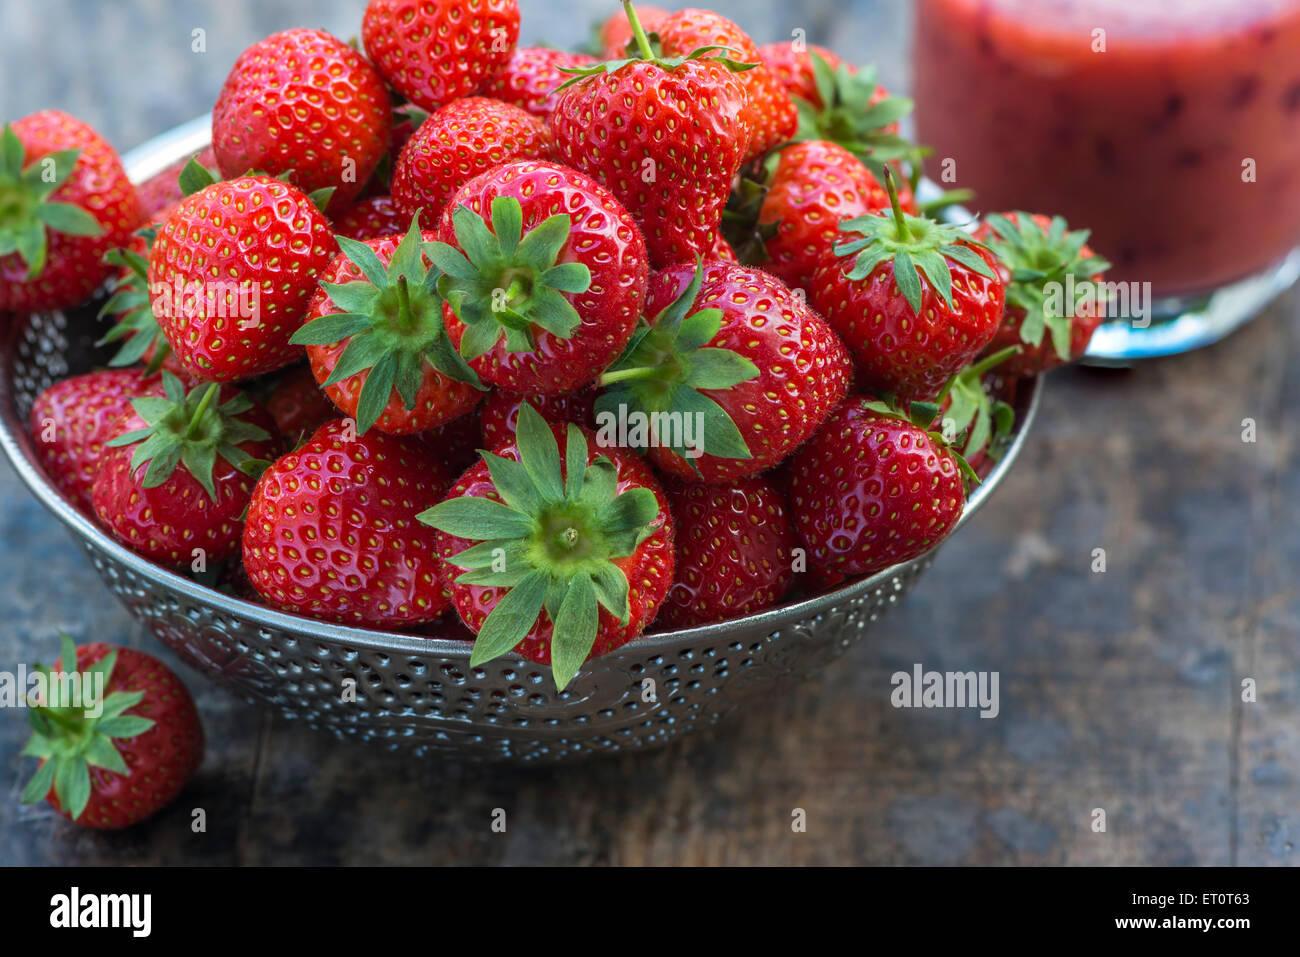 Fresh strawberries in a bowl on wooden table - Stock Image